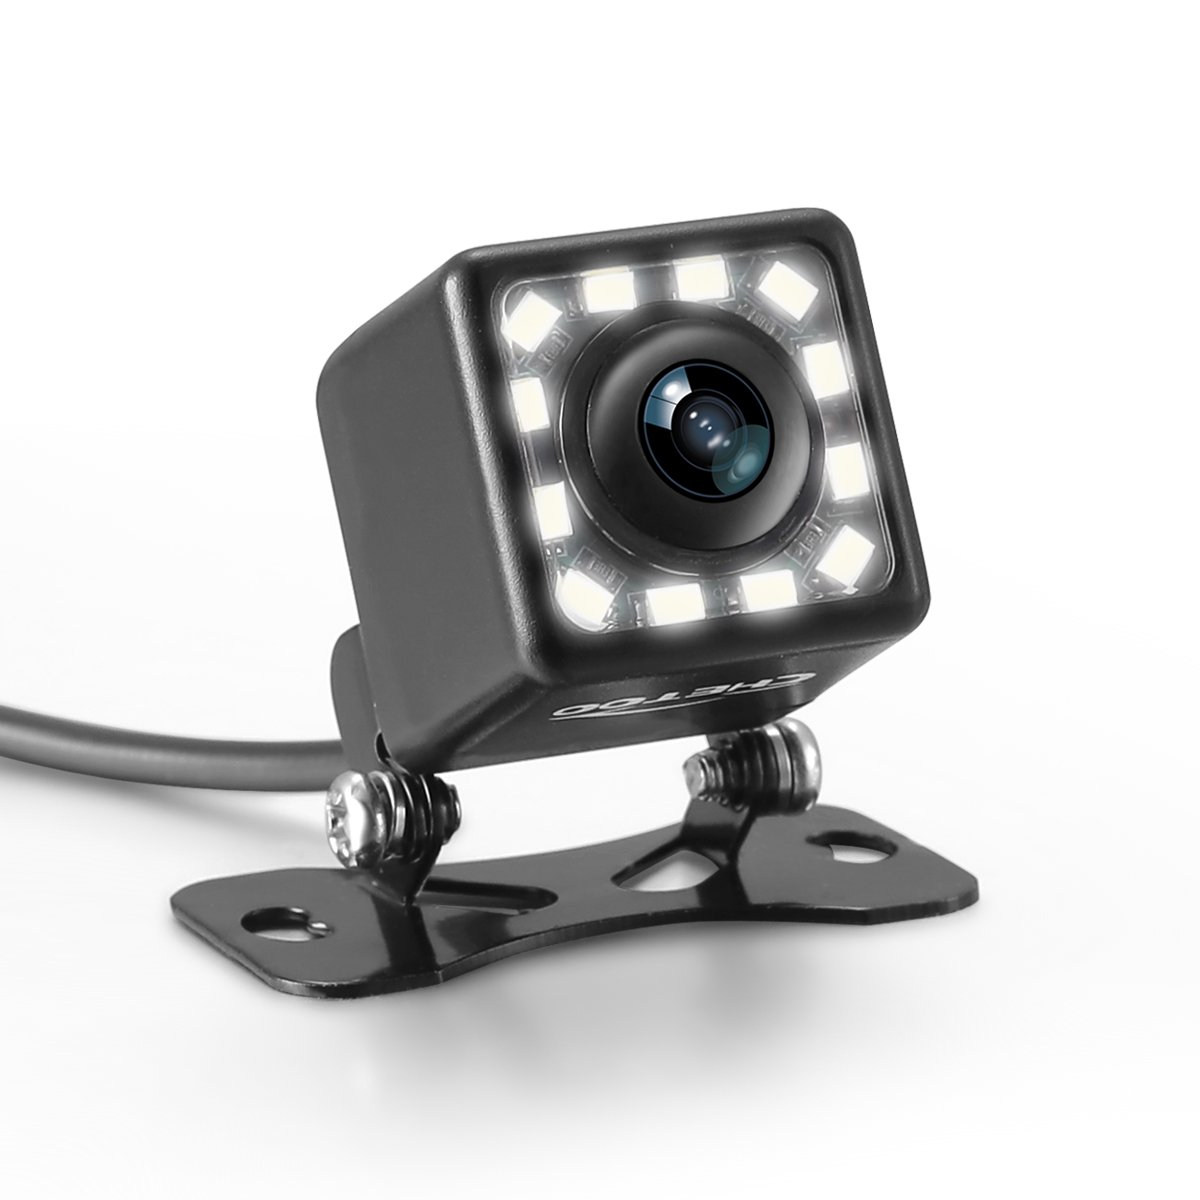 The Best Rear View Camera Reviews & Buying Guide 2